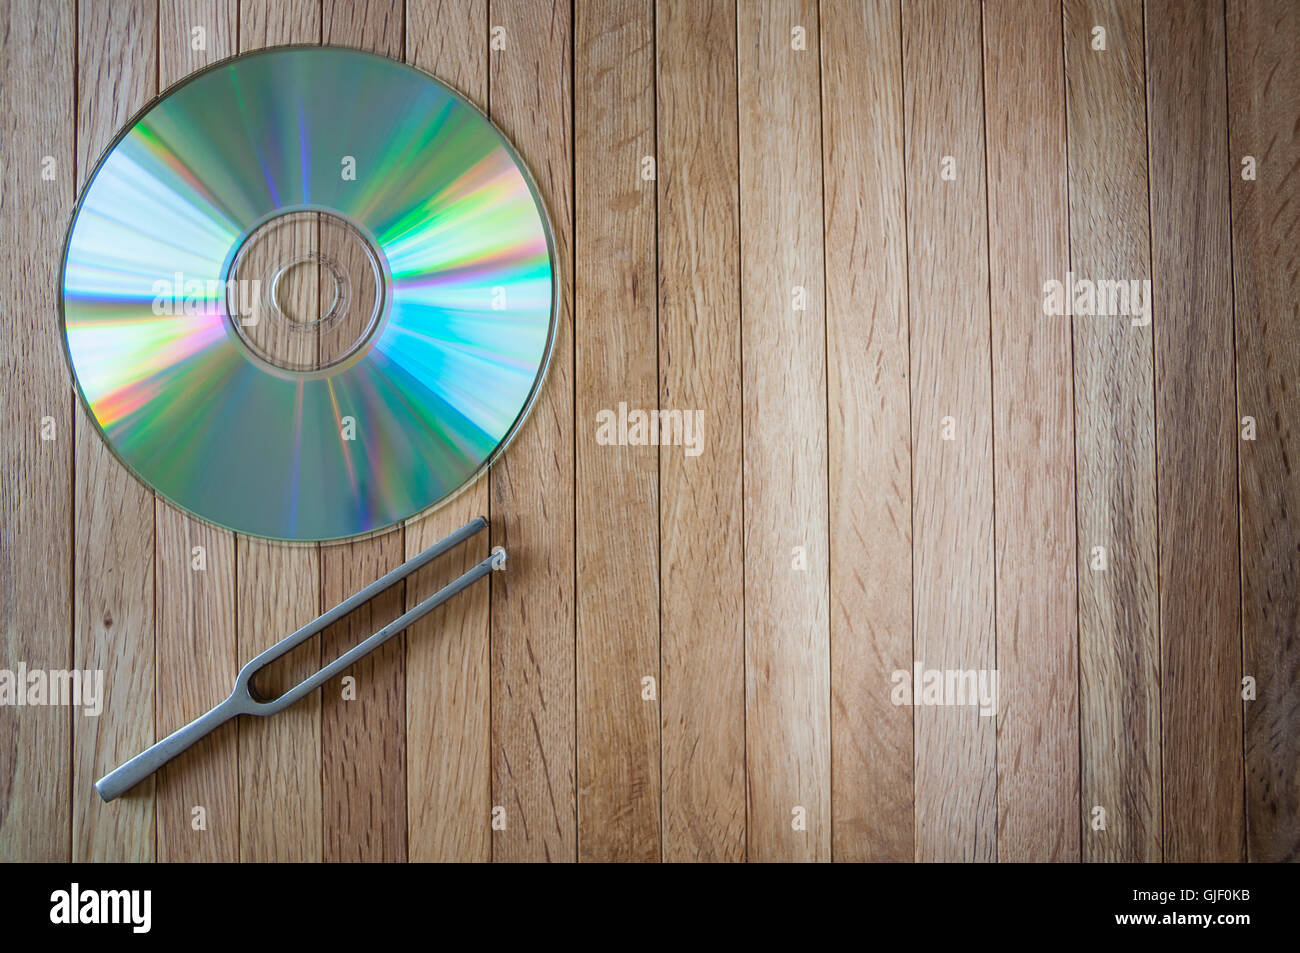 Compact Disc and Tuning Fork - Stock Image